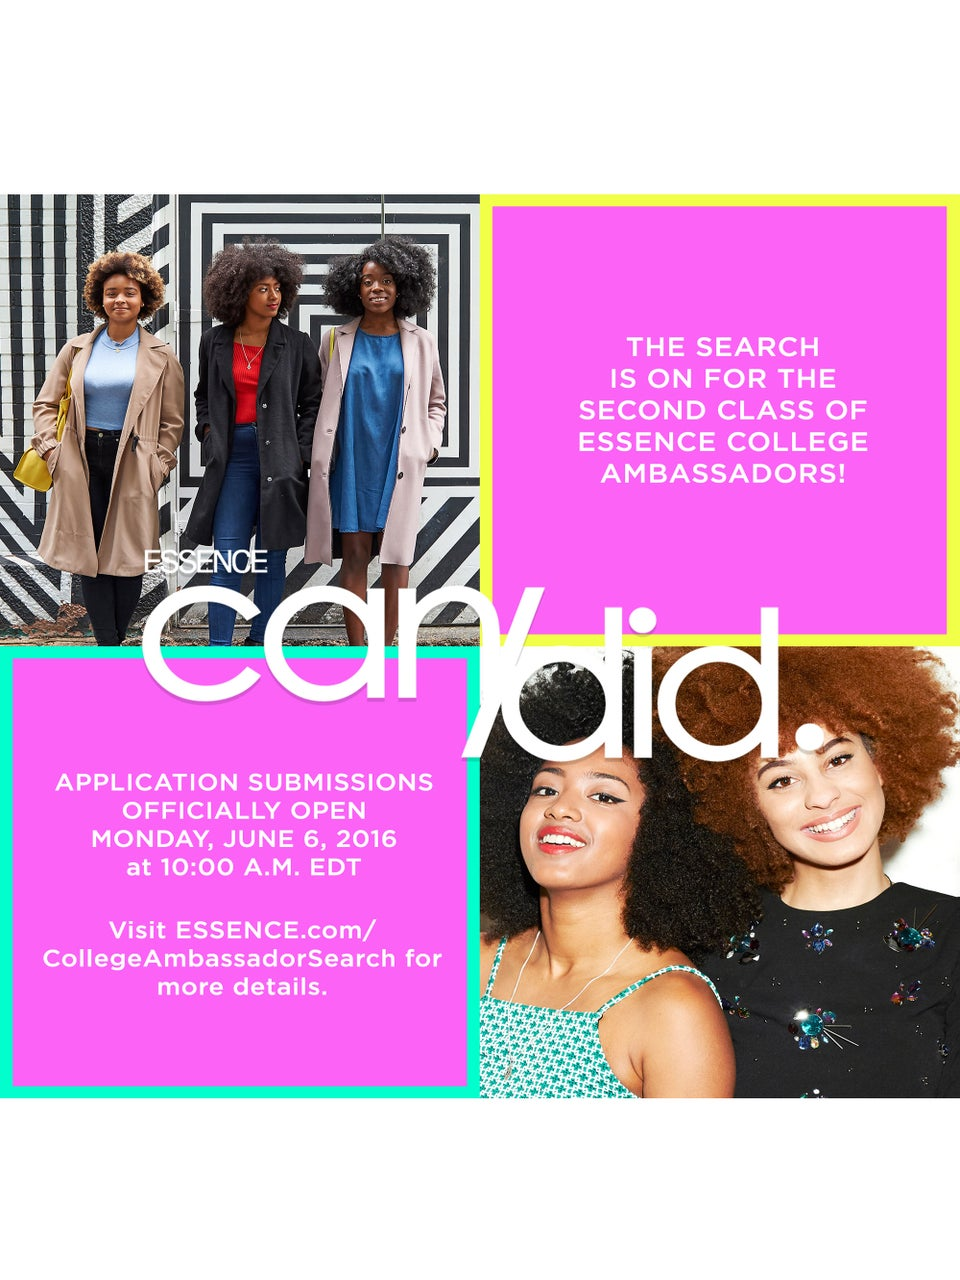 ESSENCE Wants You to Be a College Ambassador!